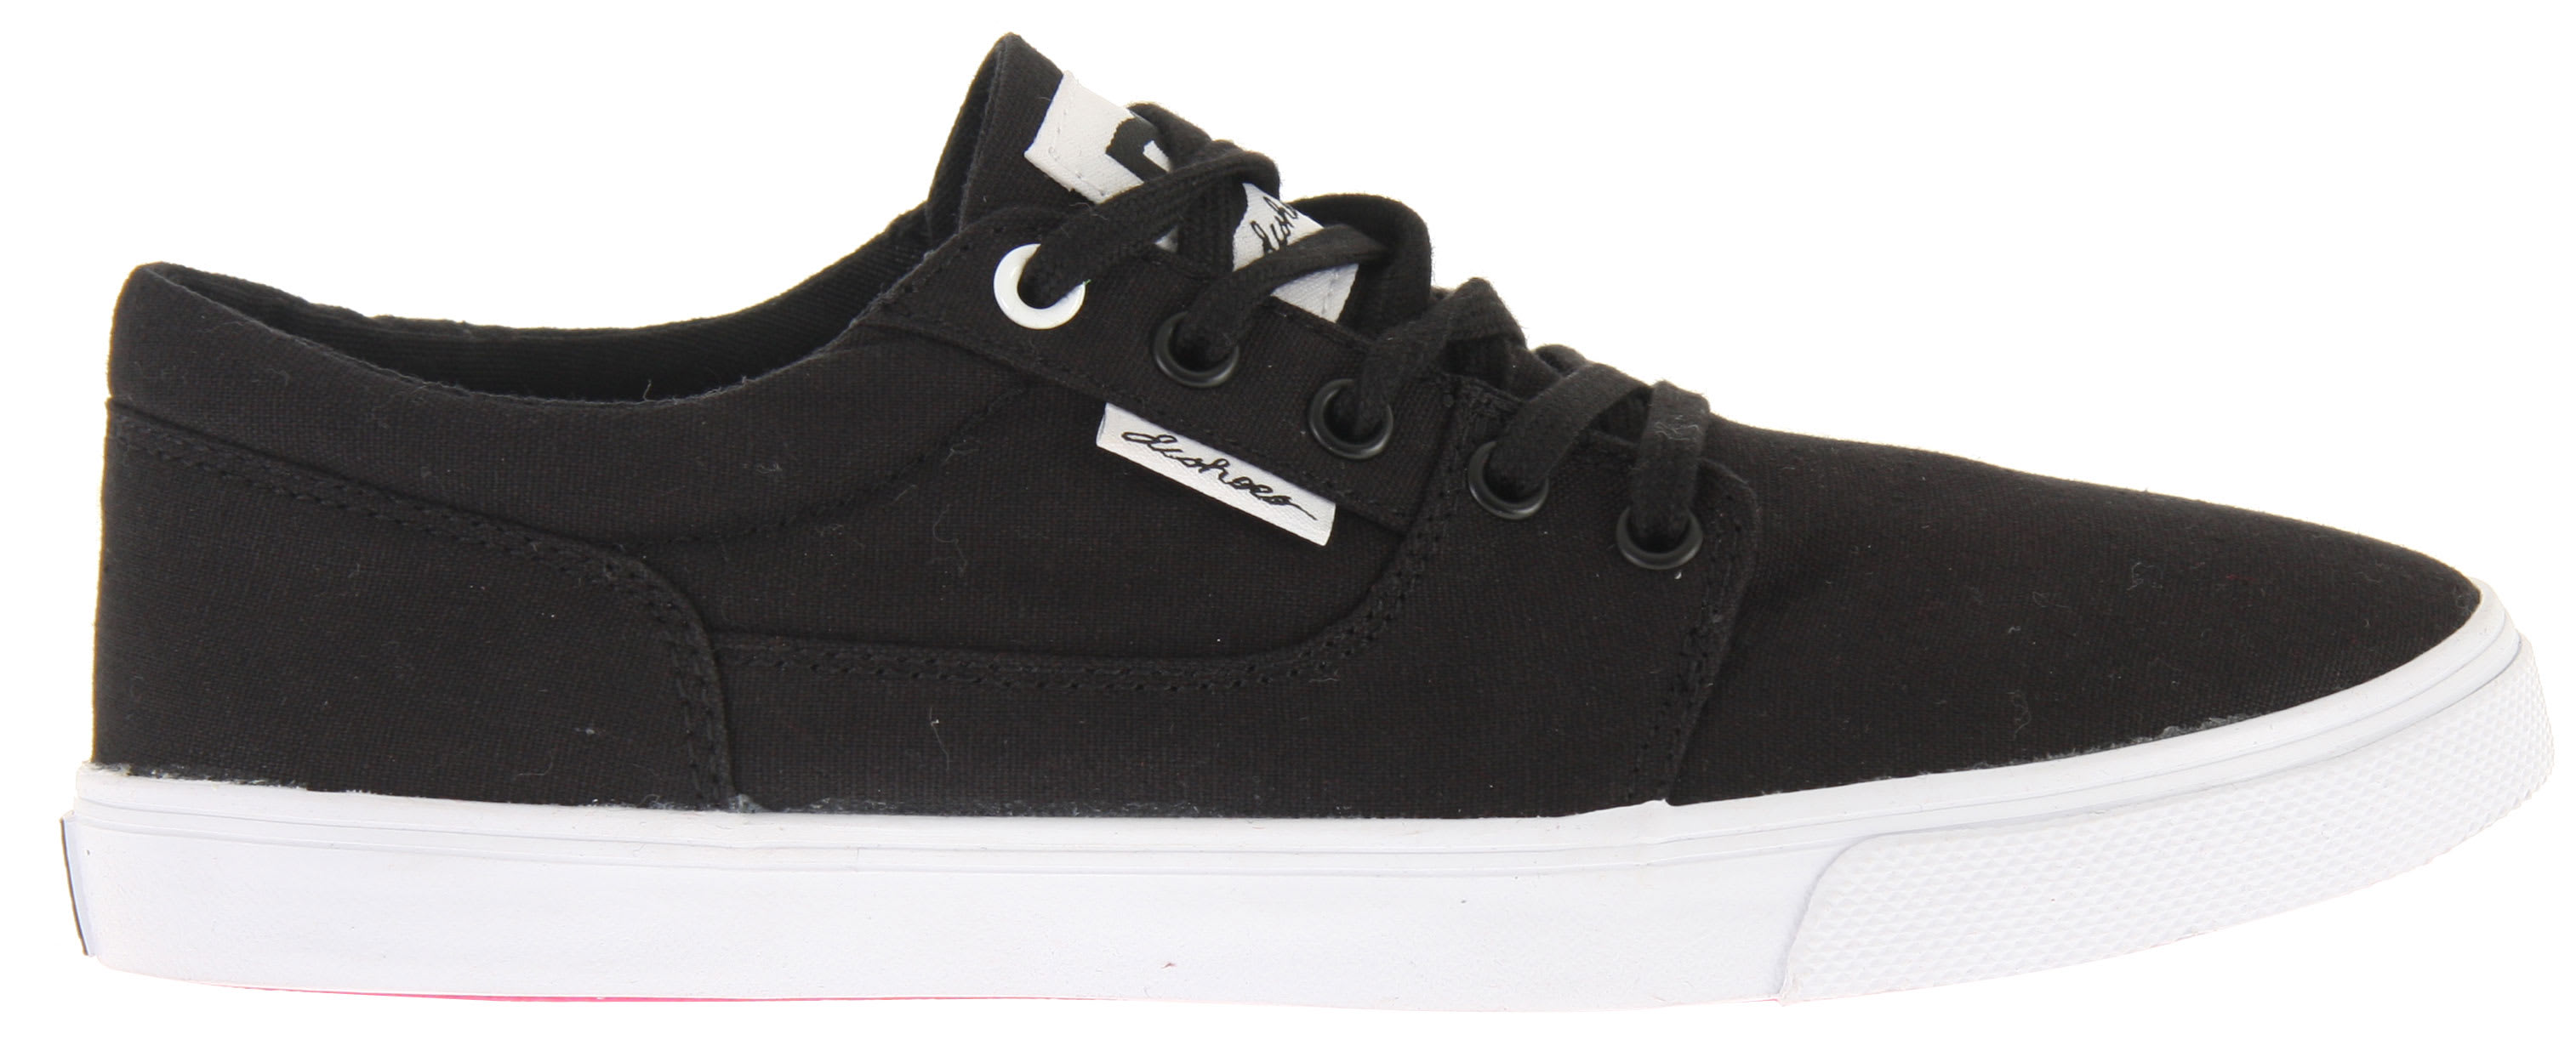 Shop for DC Bristol Canvas Shoes Black/White - Women's